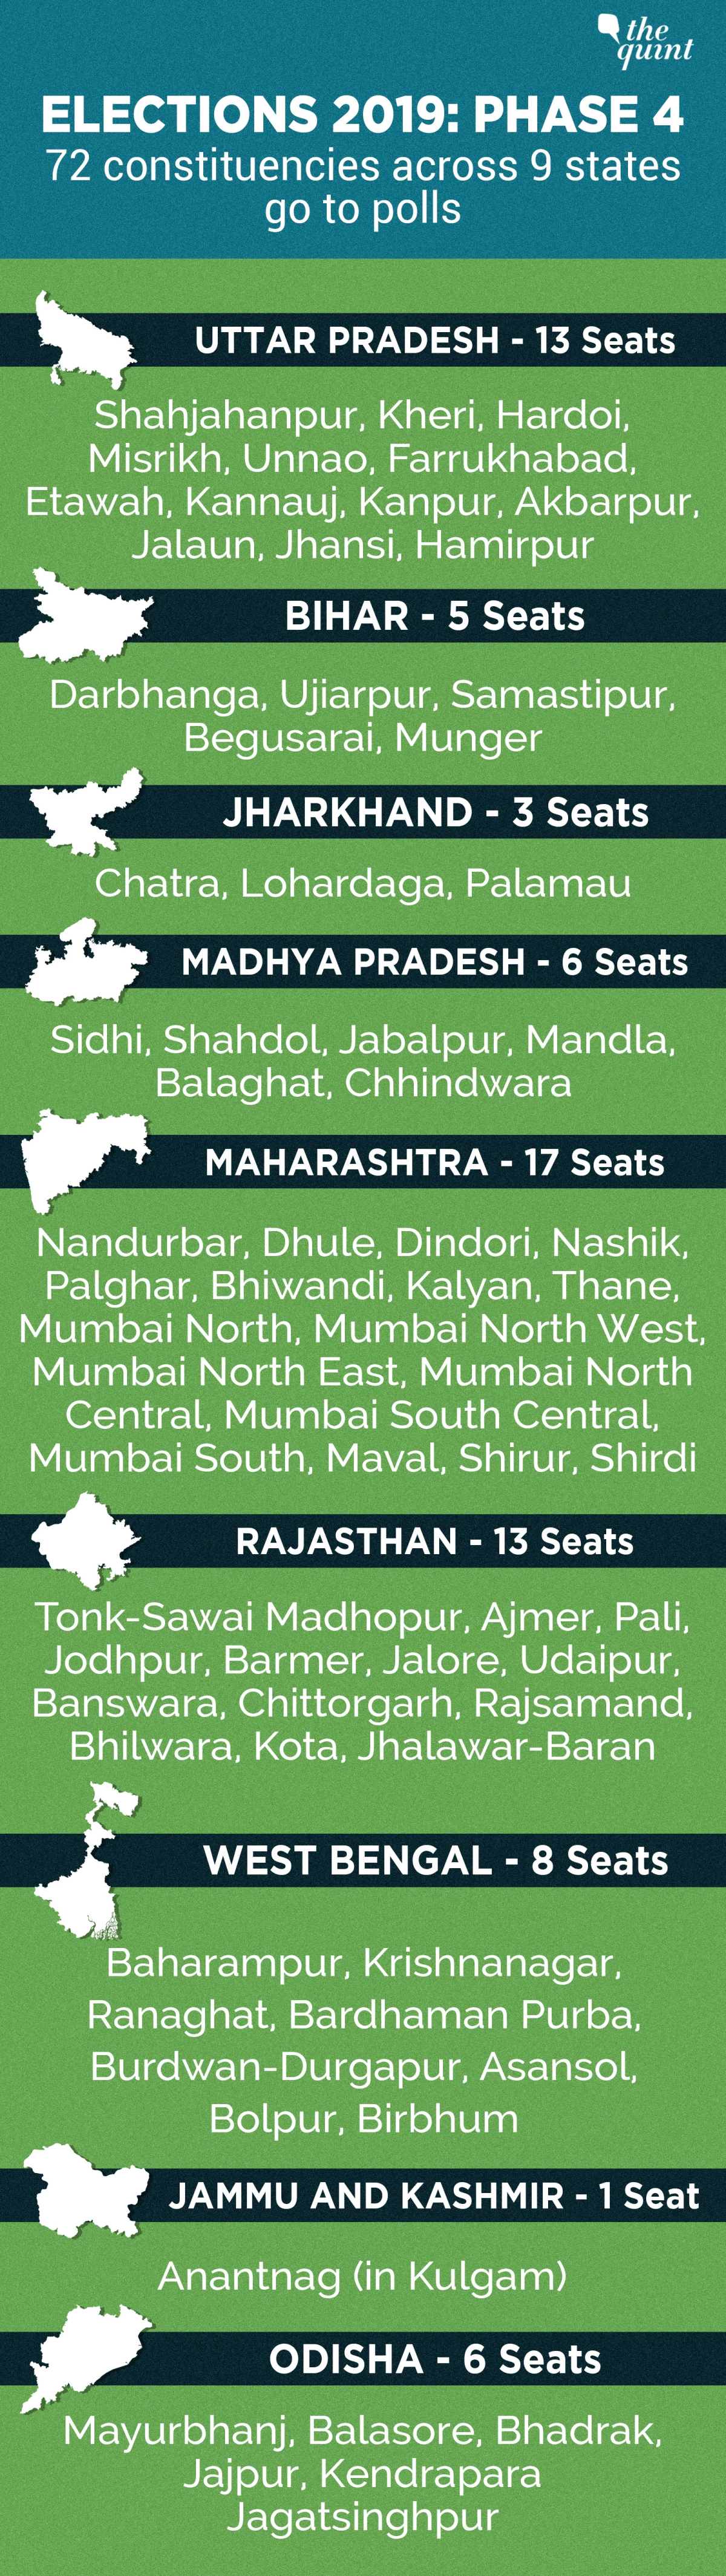 Phase 4 Polling Election 2019: Know 72 Constituency-Wise Election